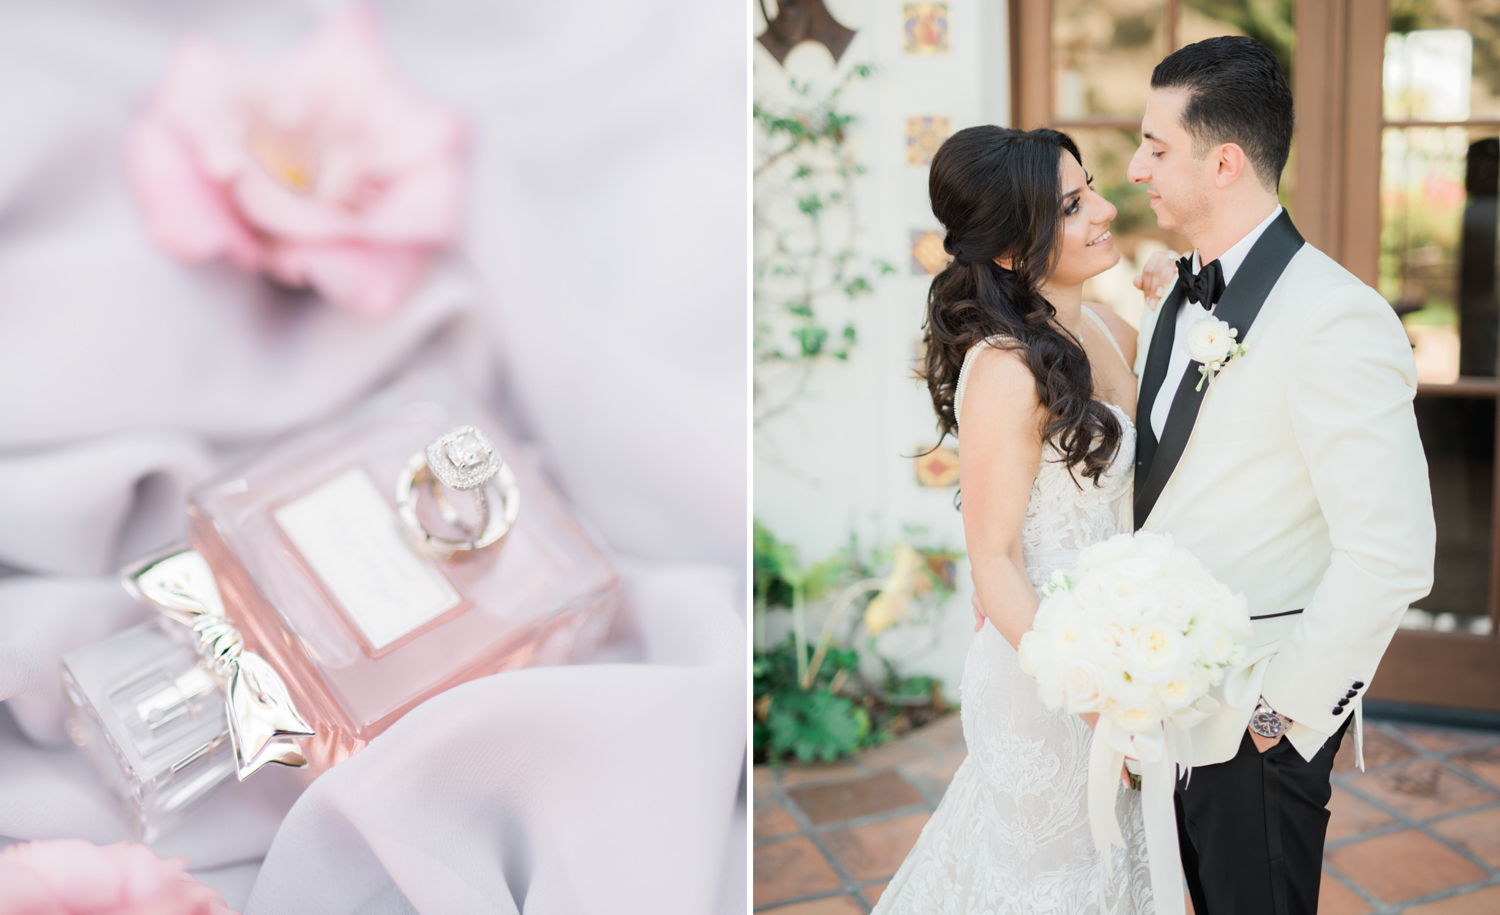 azer&michelle_hummingbird_nest_ranch_wedding_fine_art_photographer_los_angeles-19.jpg